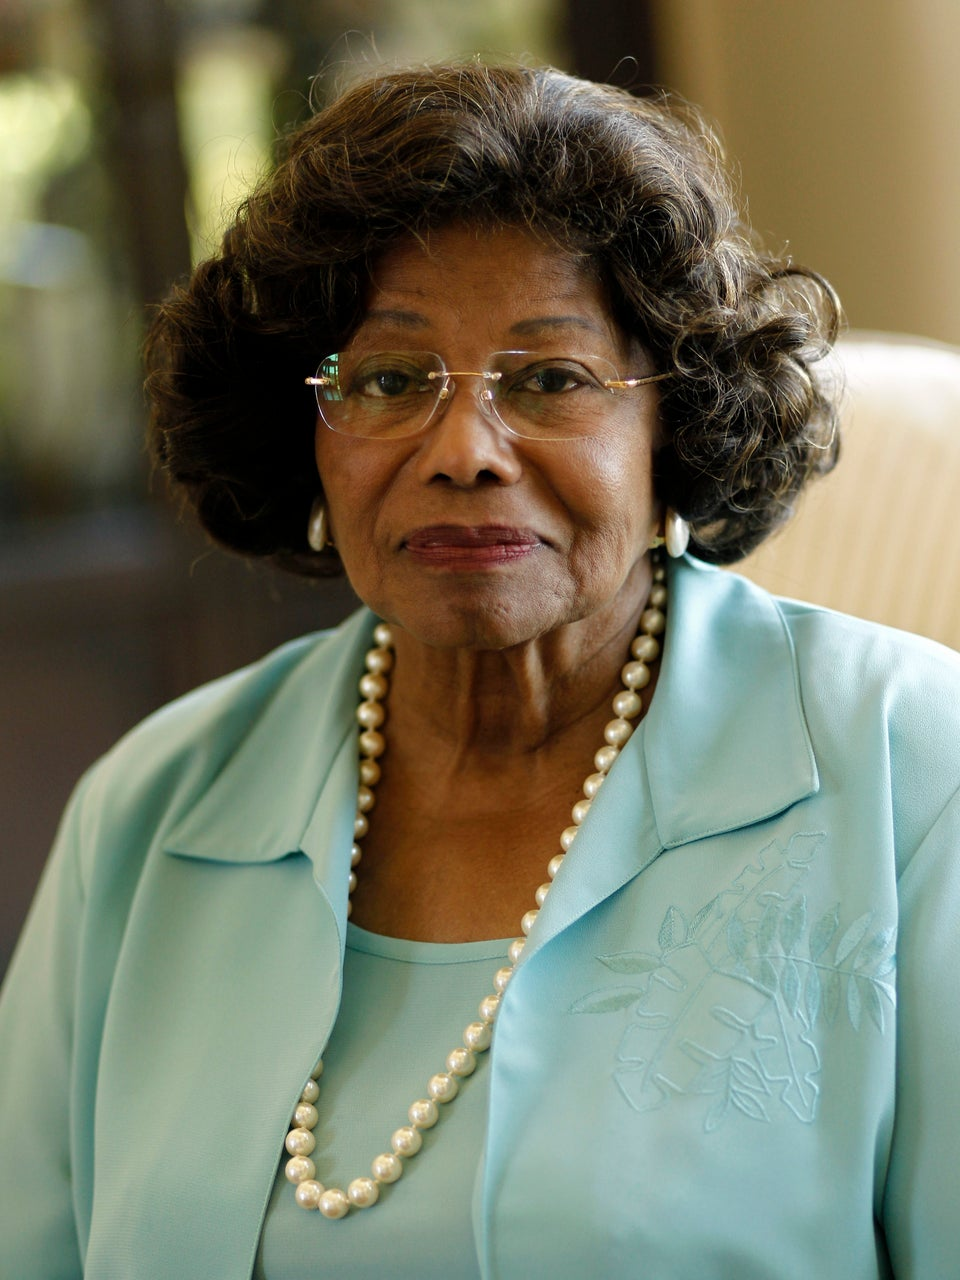 Katherine Jackson Reported Missing; Jermaine Says She's 'Resting' in Arizona